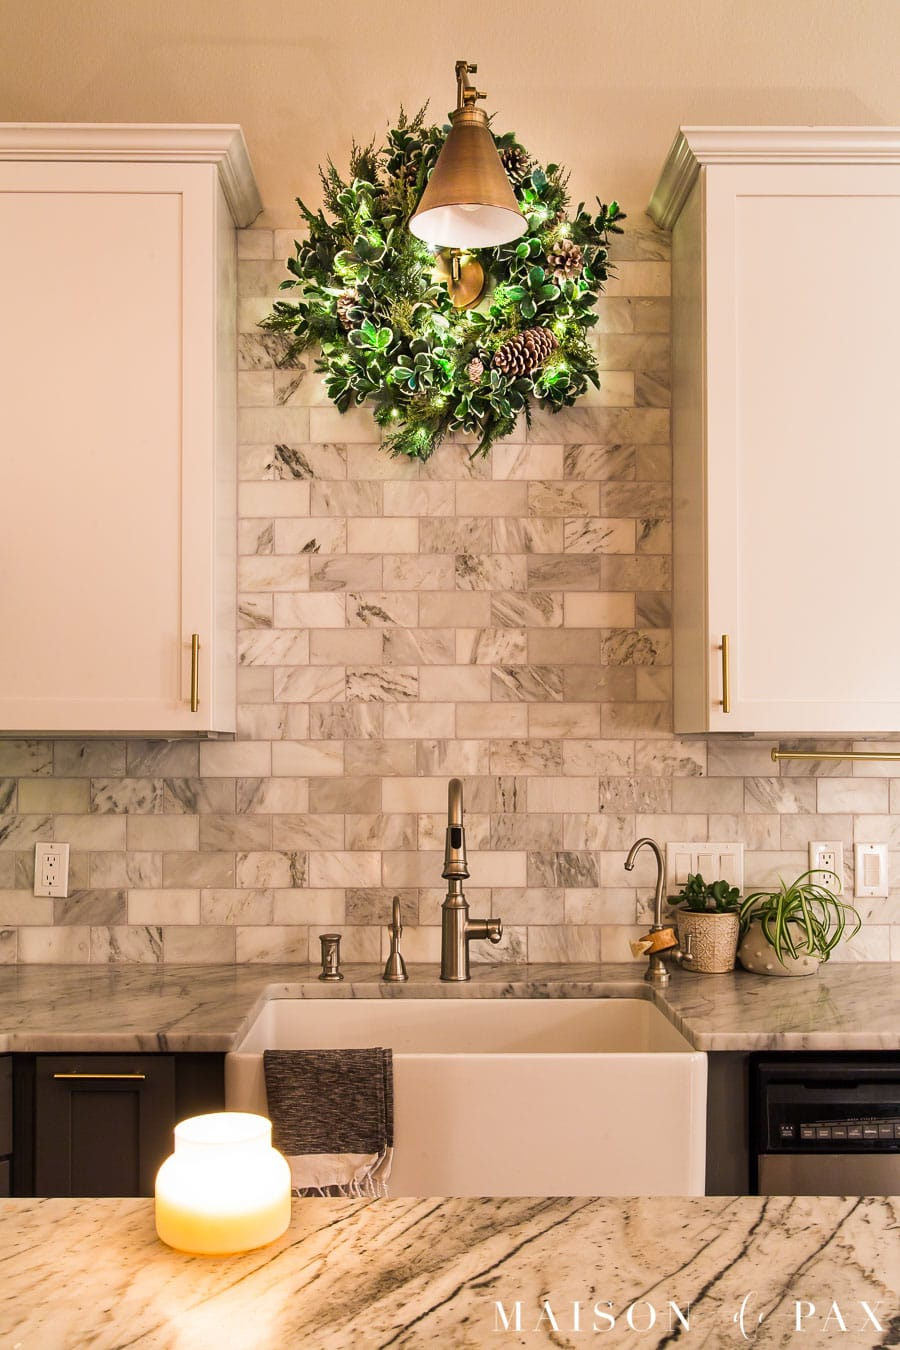 wreath with twinkle lights above kitchen sink | Maison de Pax